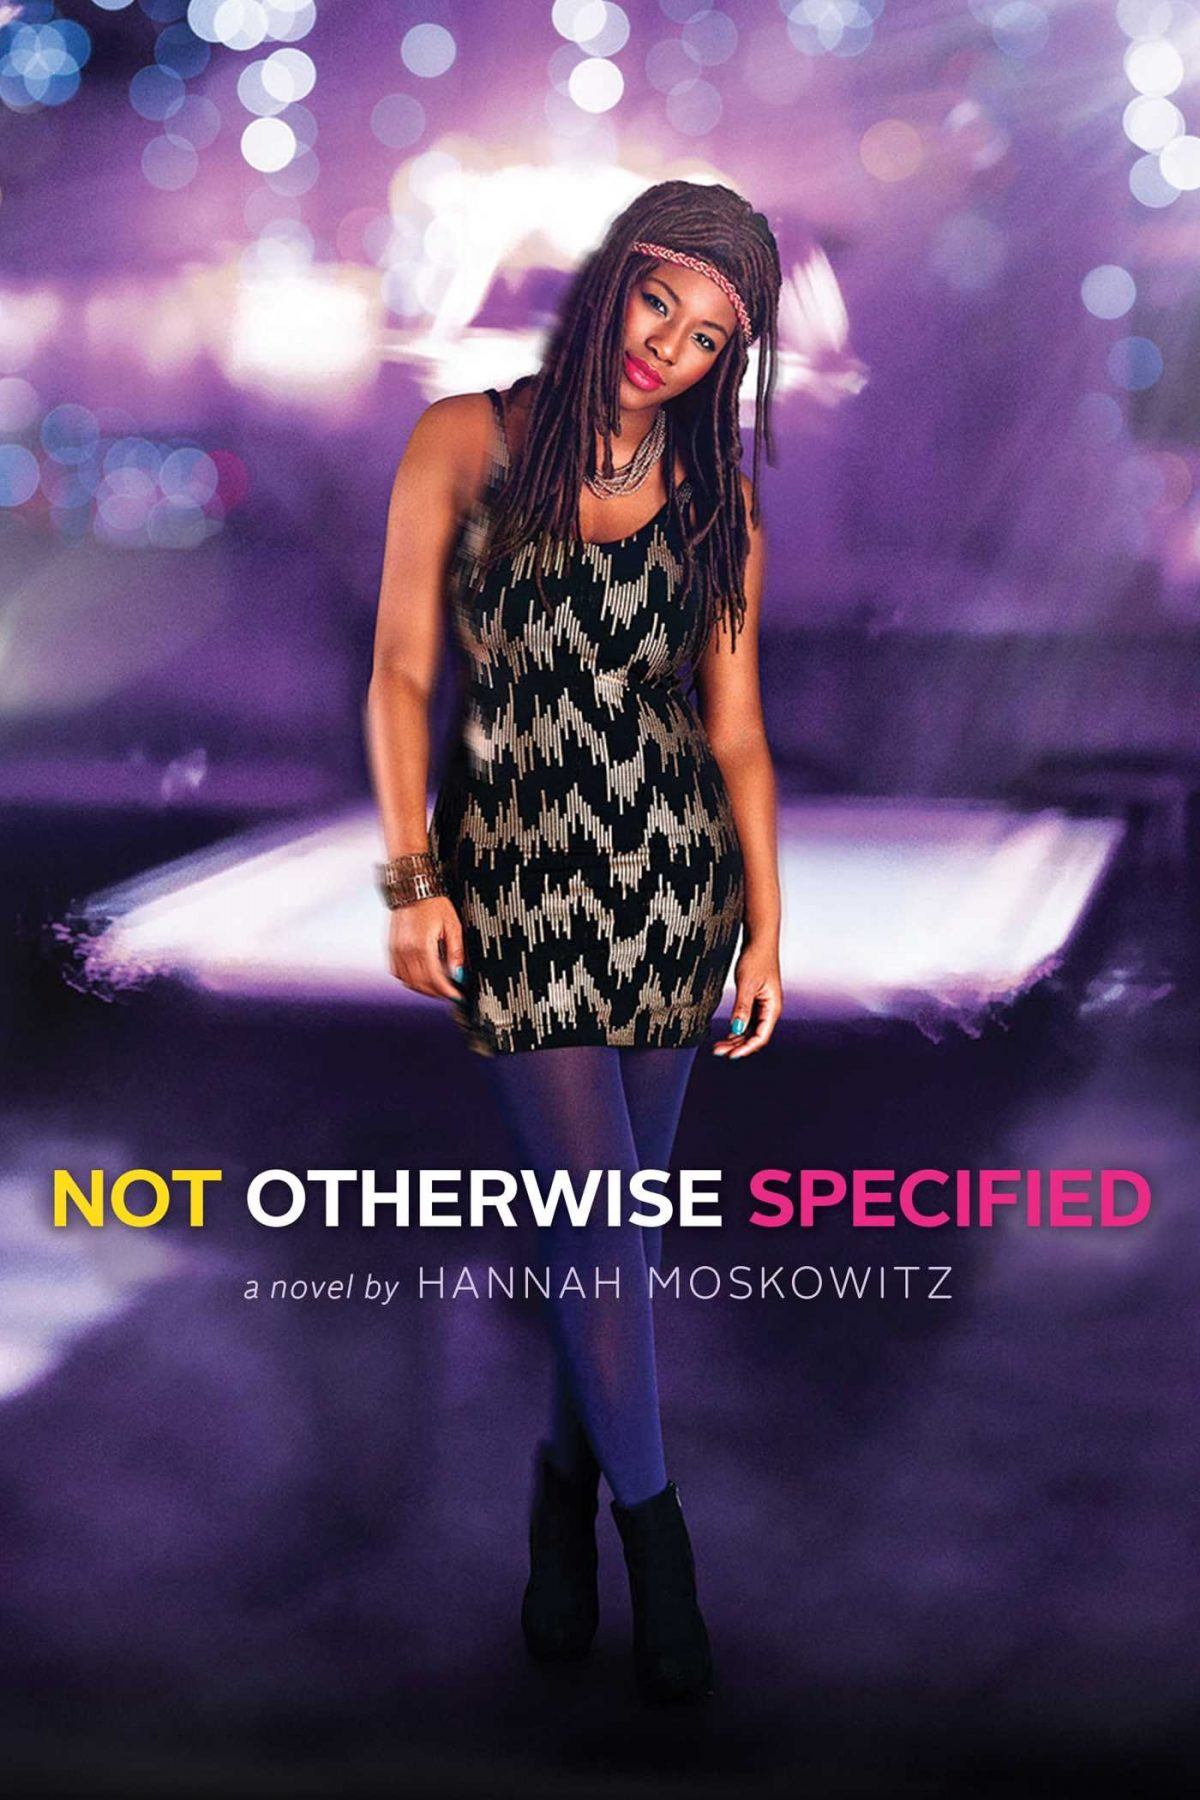 An African American girl wearing a short striped dress and purple tights and a headband stands with one leg crossed over the other and her head titled to the side.  The background is a blurry purple with blurry lights.